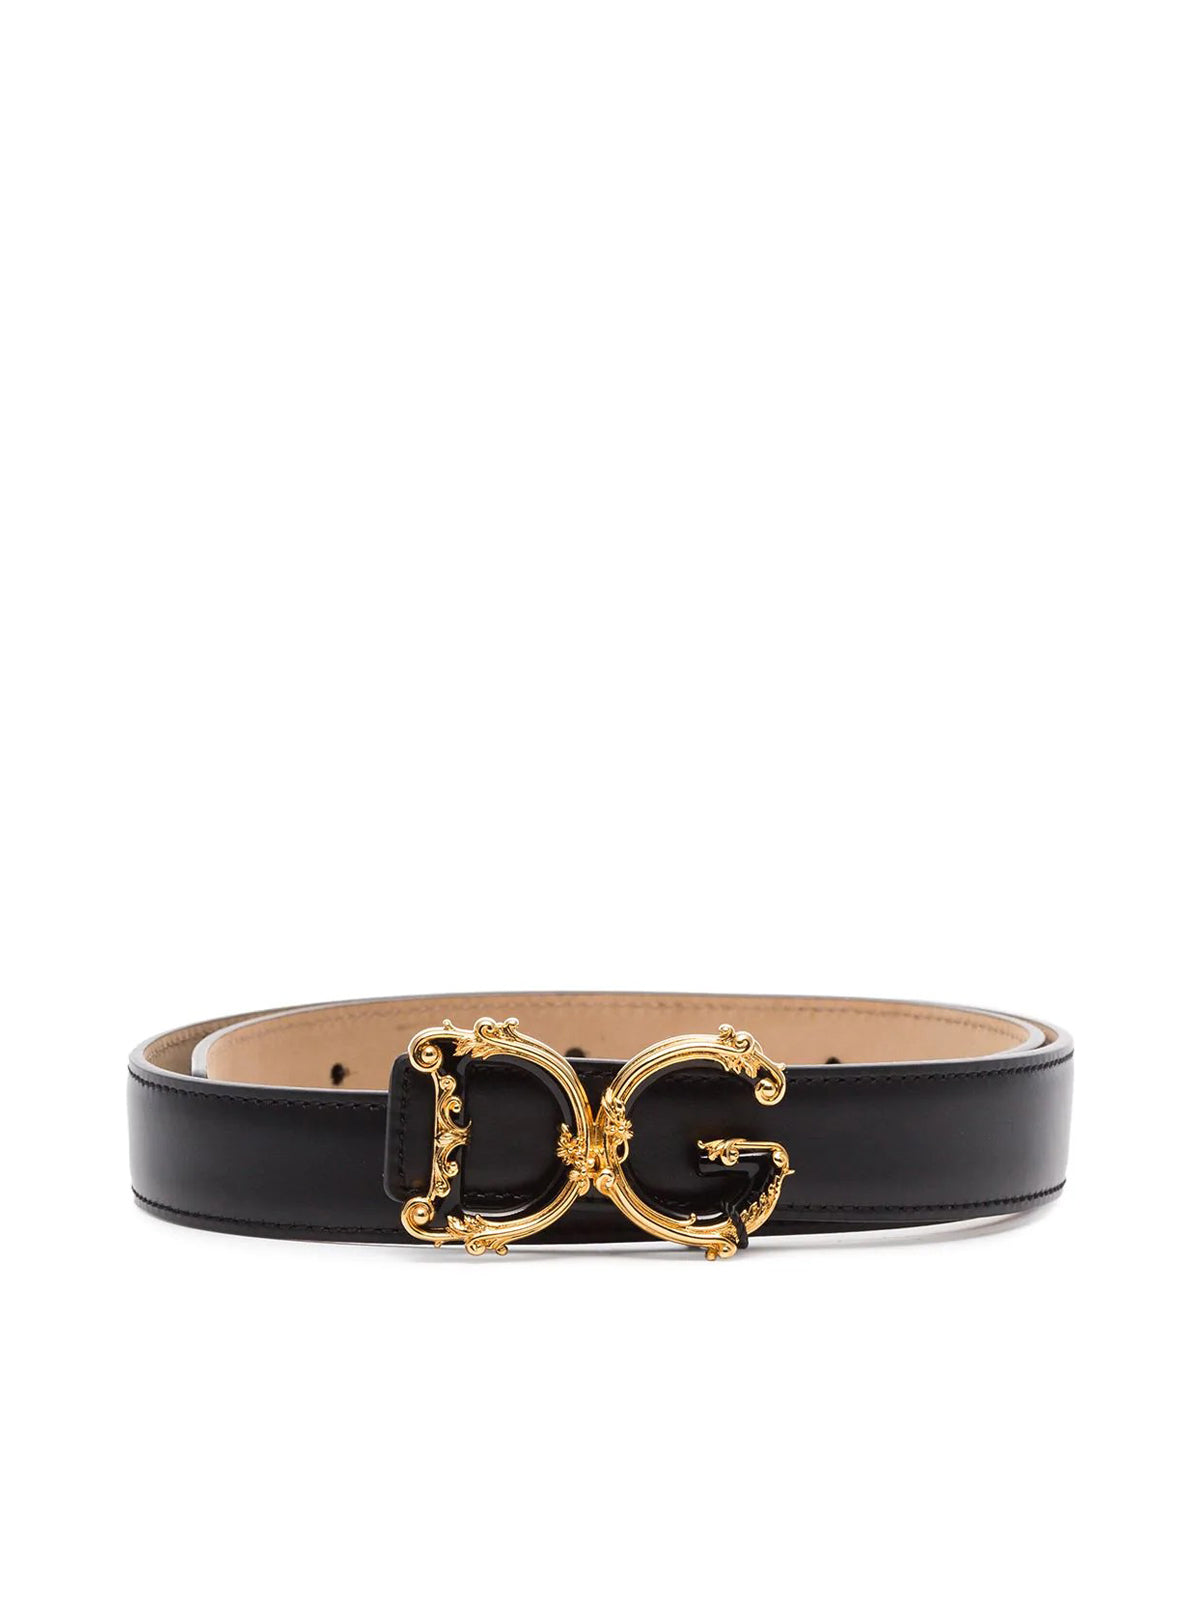 BAROQUE LOGO BELT